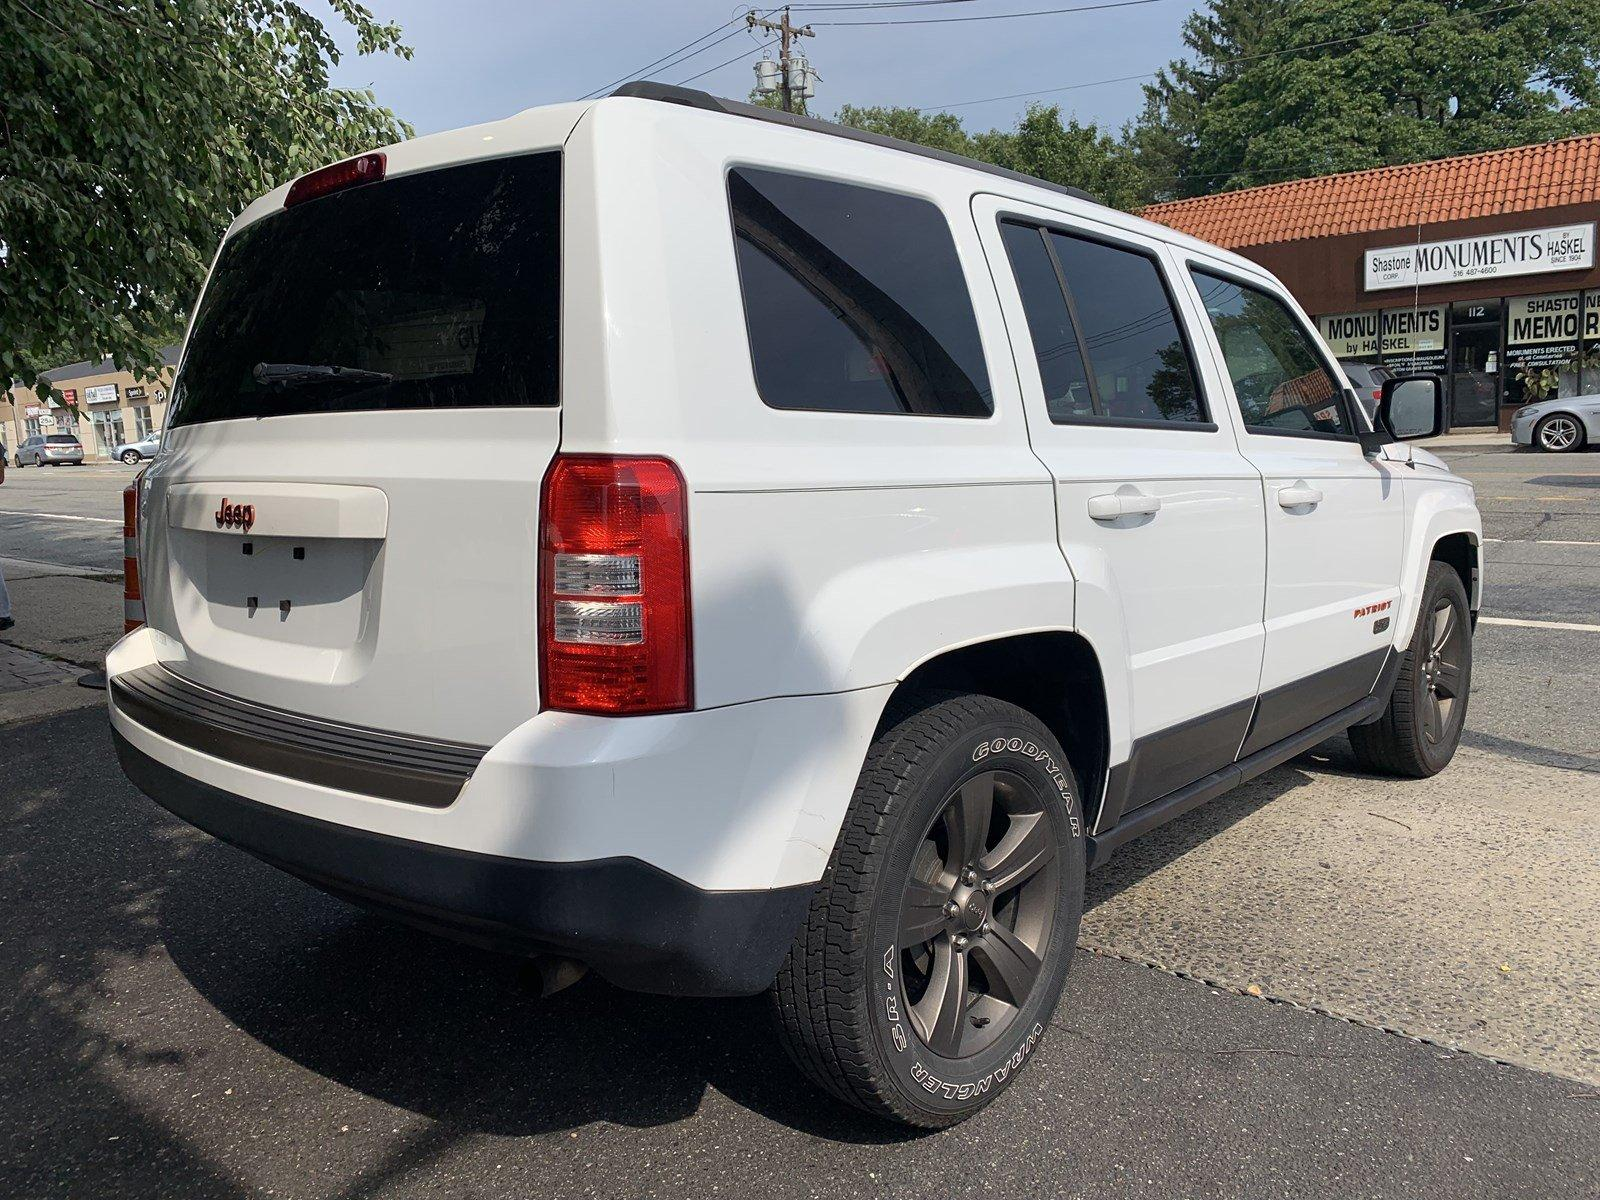 Used-2016-Jeep-Patriot-75th-Anniversary